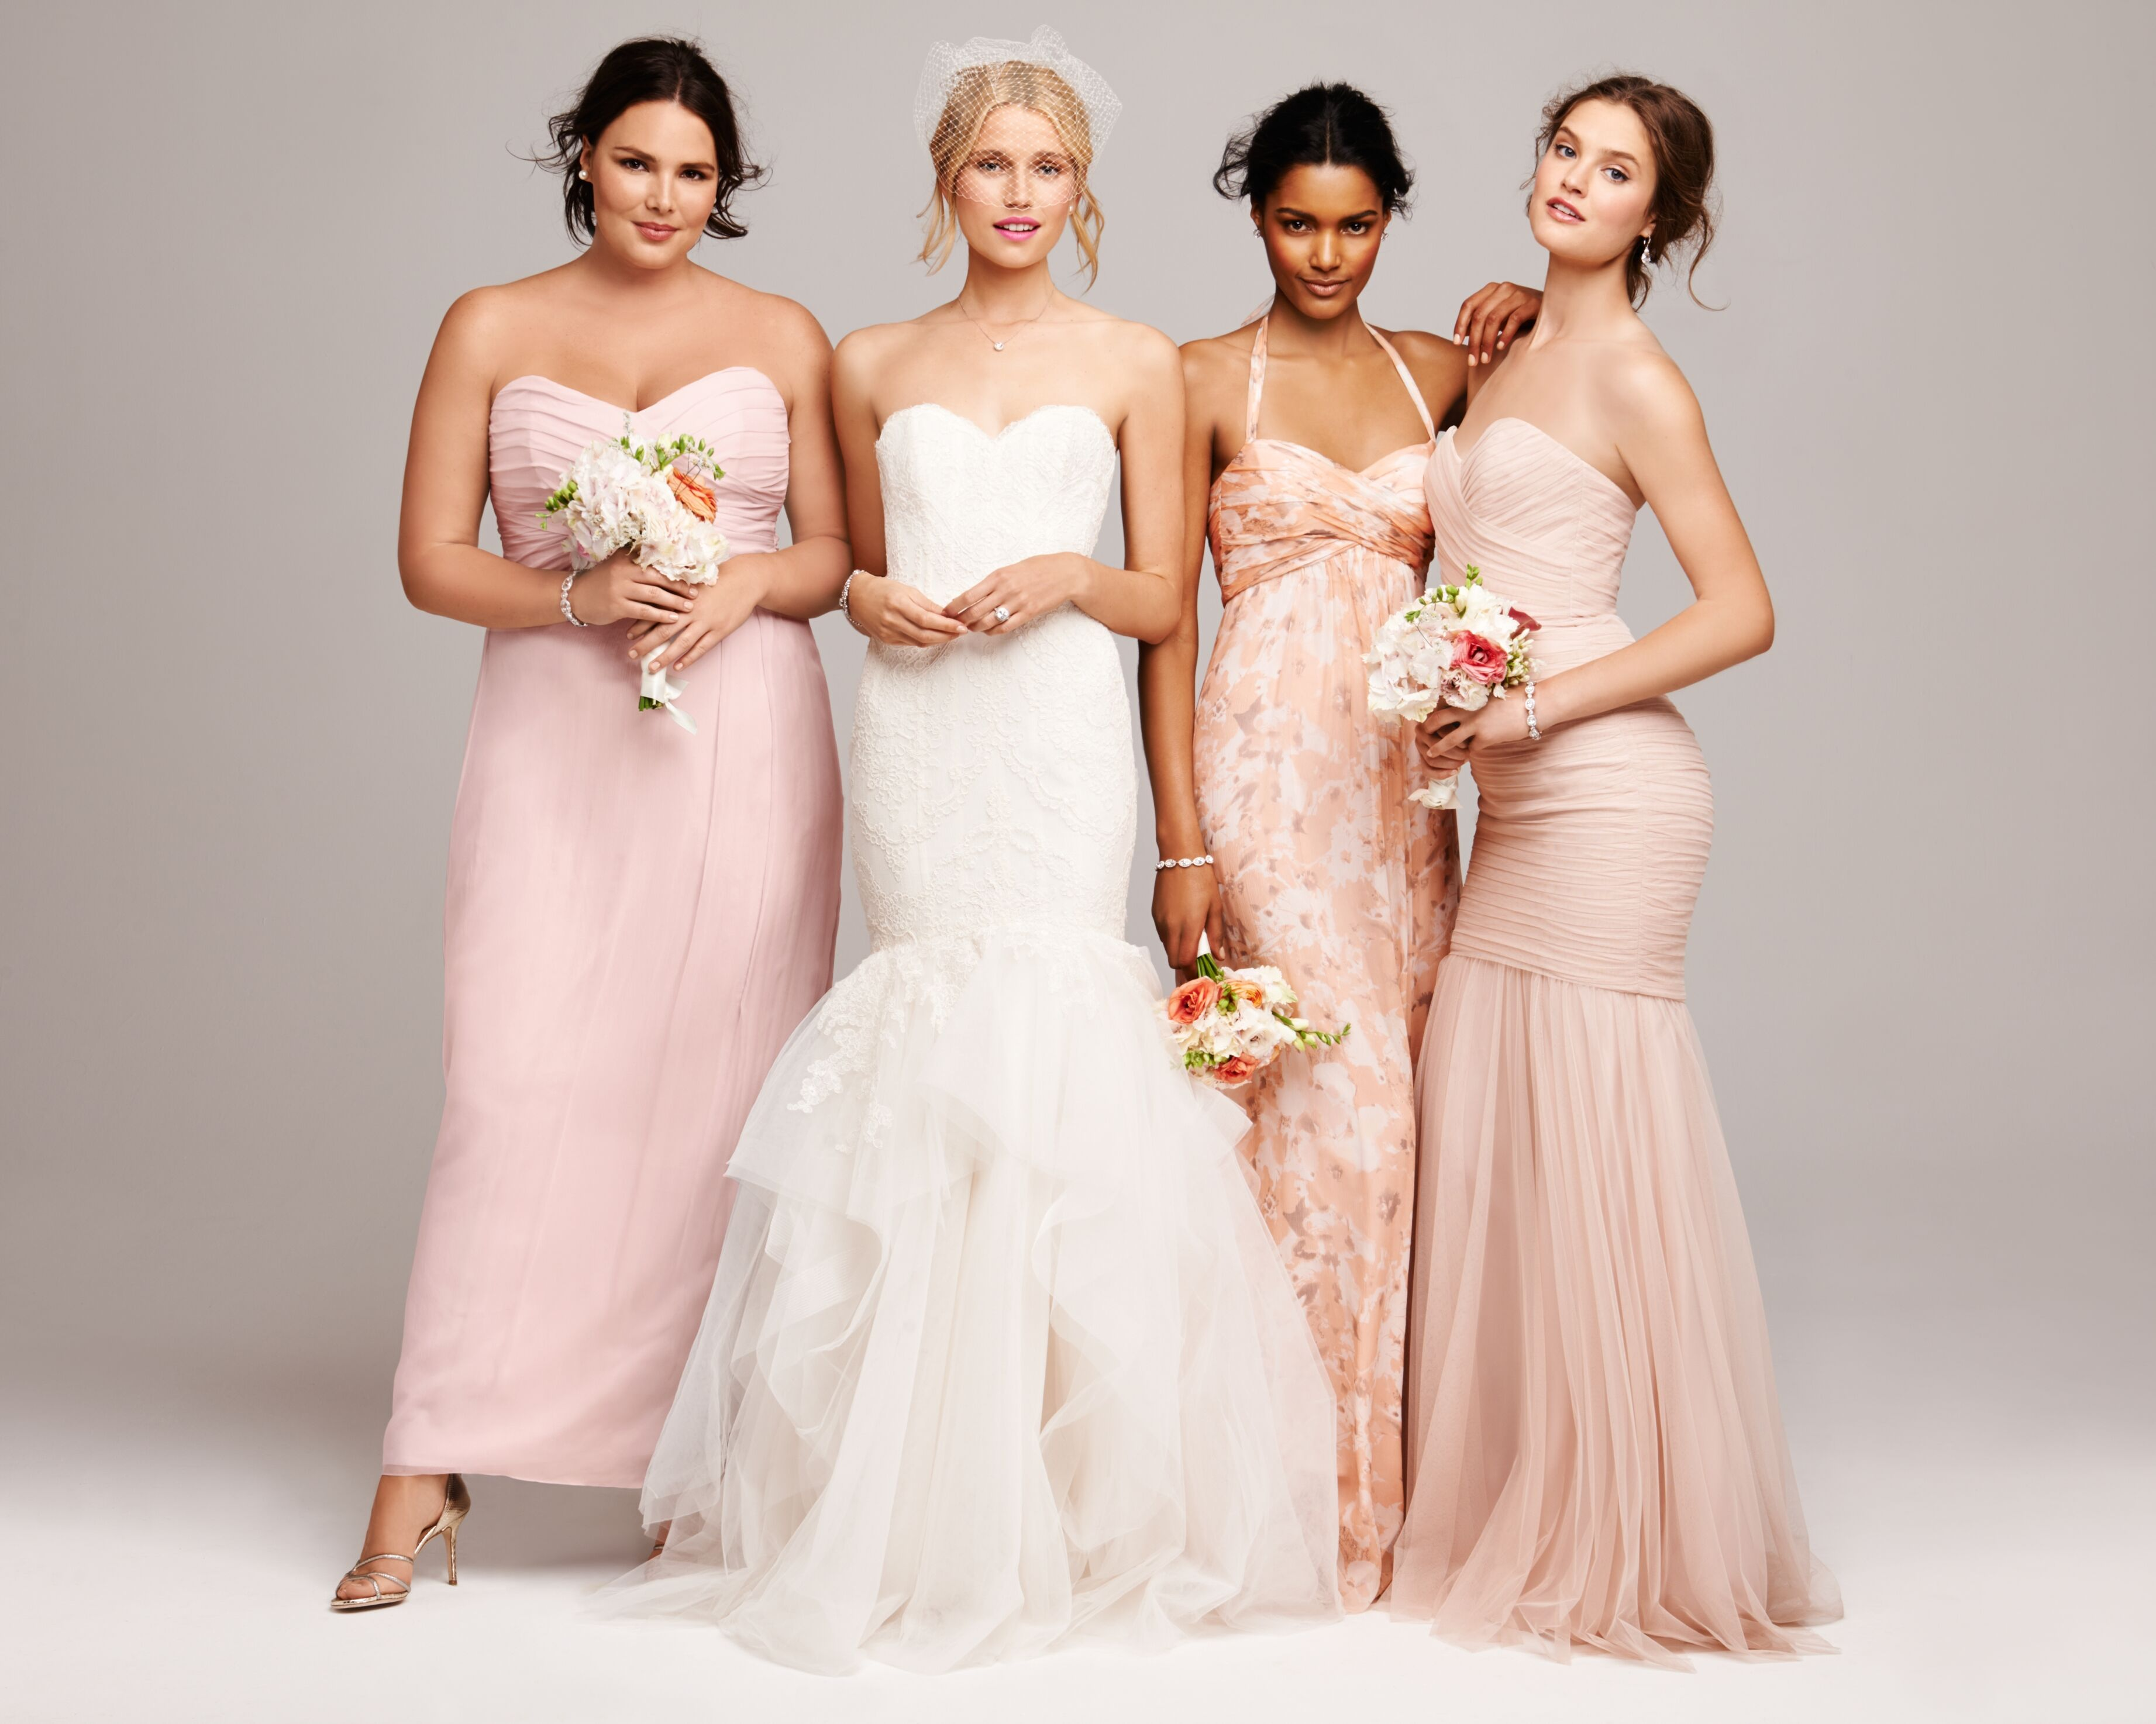 Bridal Salons in Merrick, NY - The Knot